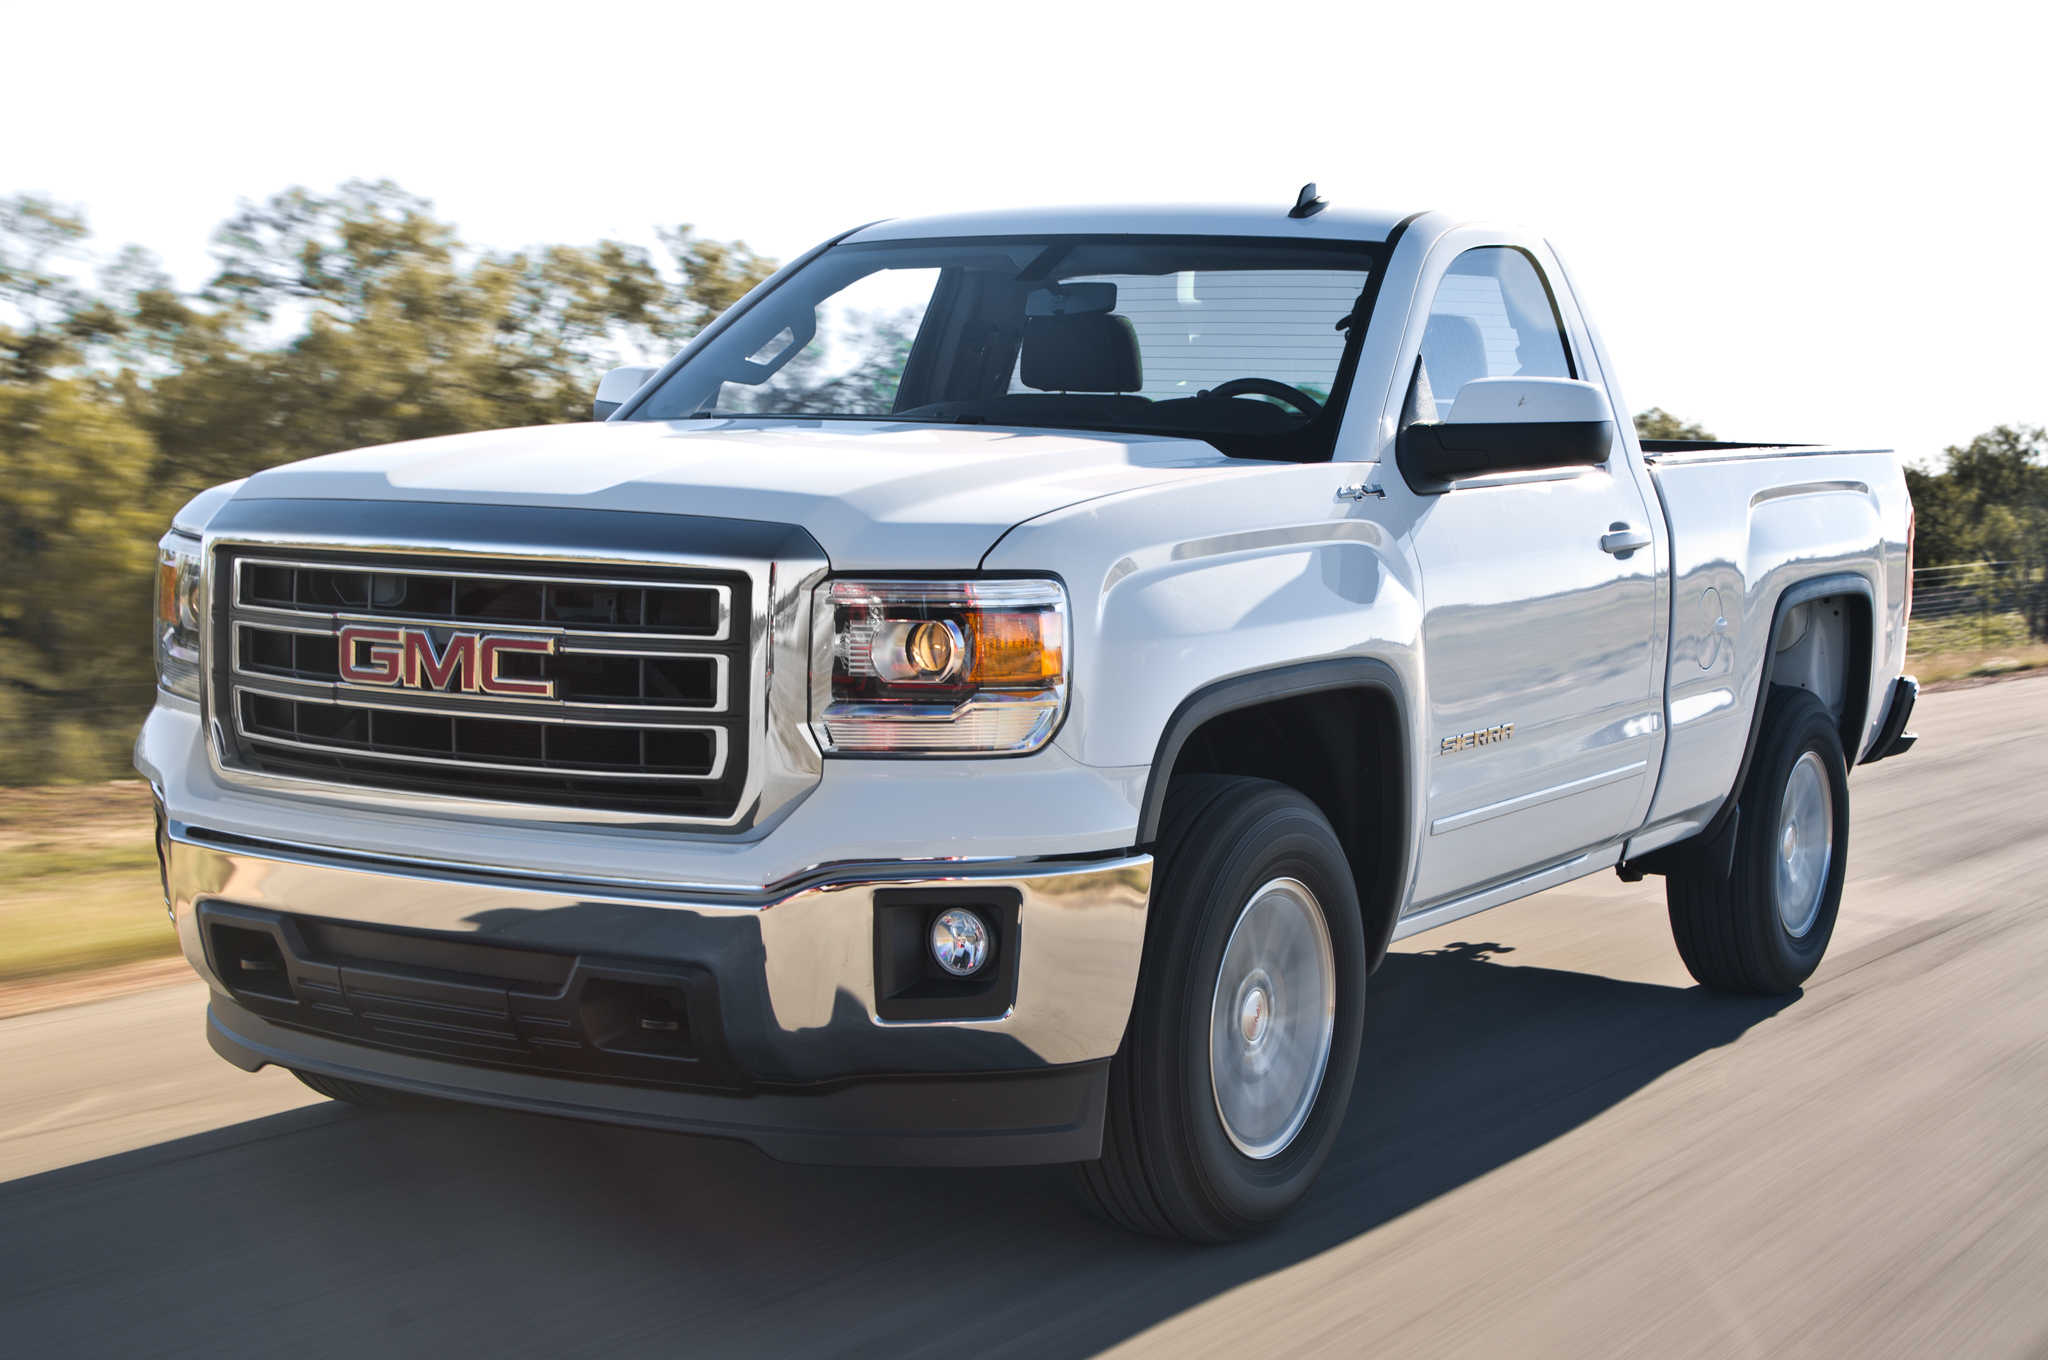 2014 gmc sierra regular cab first test motortrend. Black Bedroom Furniture Sets. Home Design Ideas